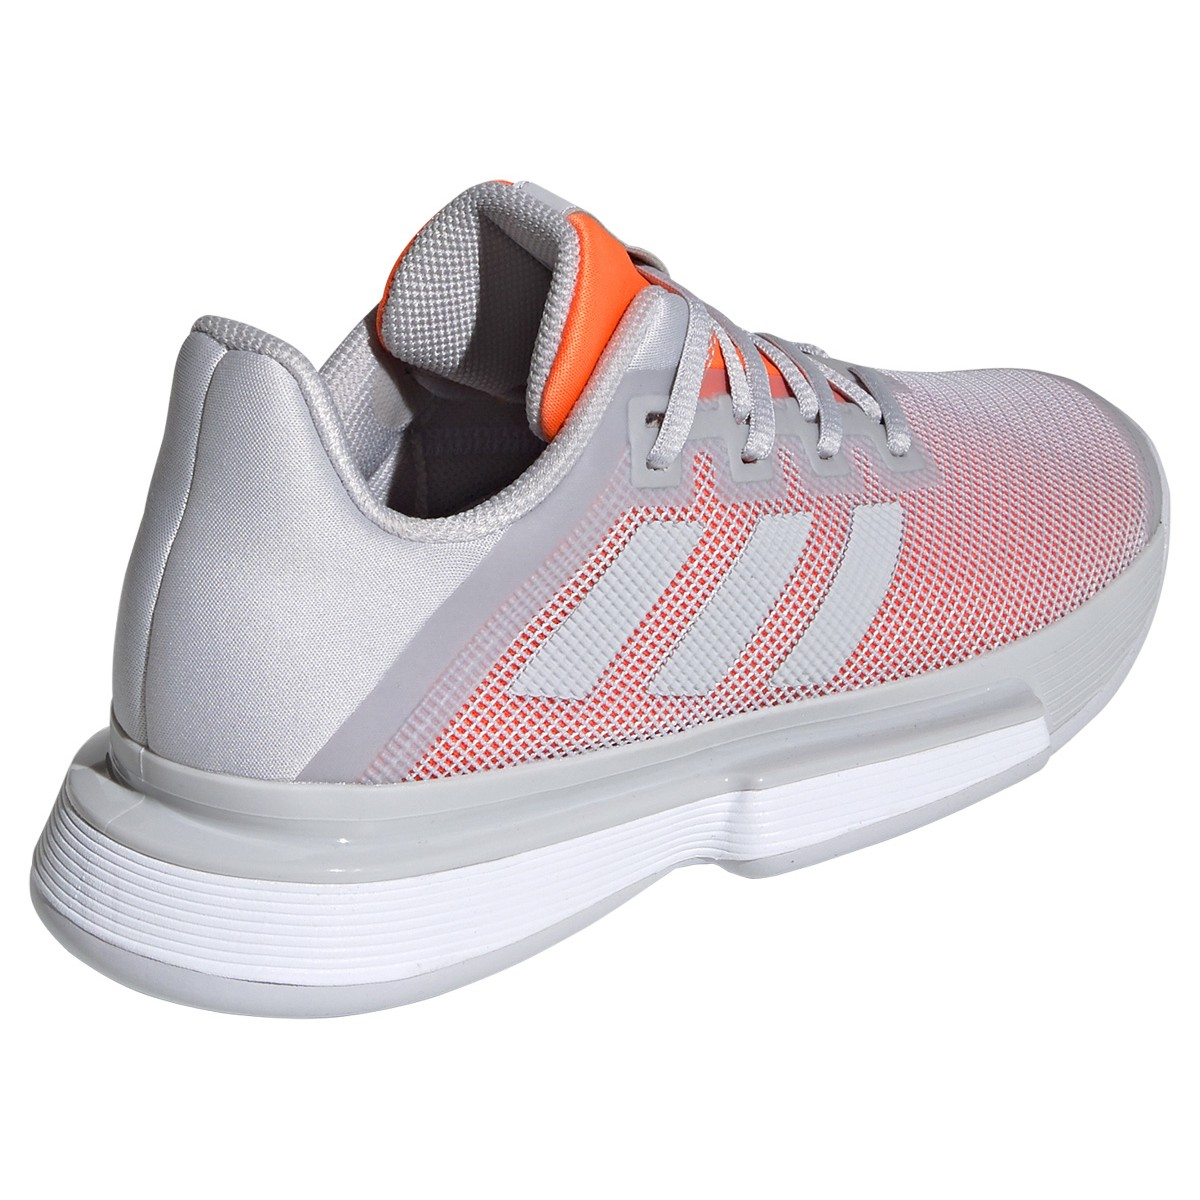 Chaussures Femme adidas SoleMatch Bounce TERRE BATTUE Gris